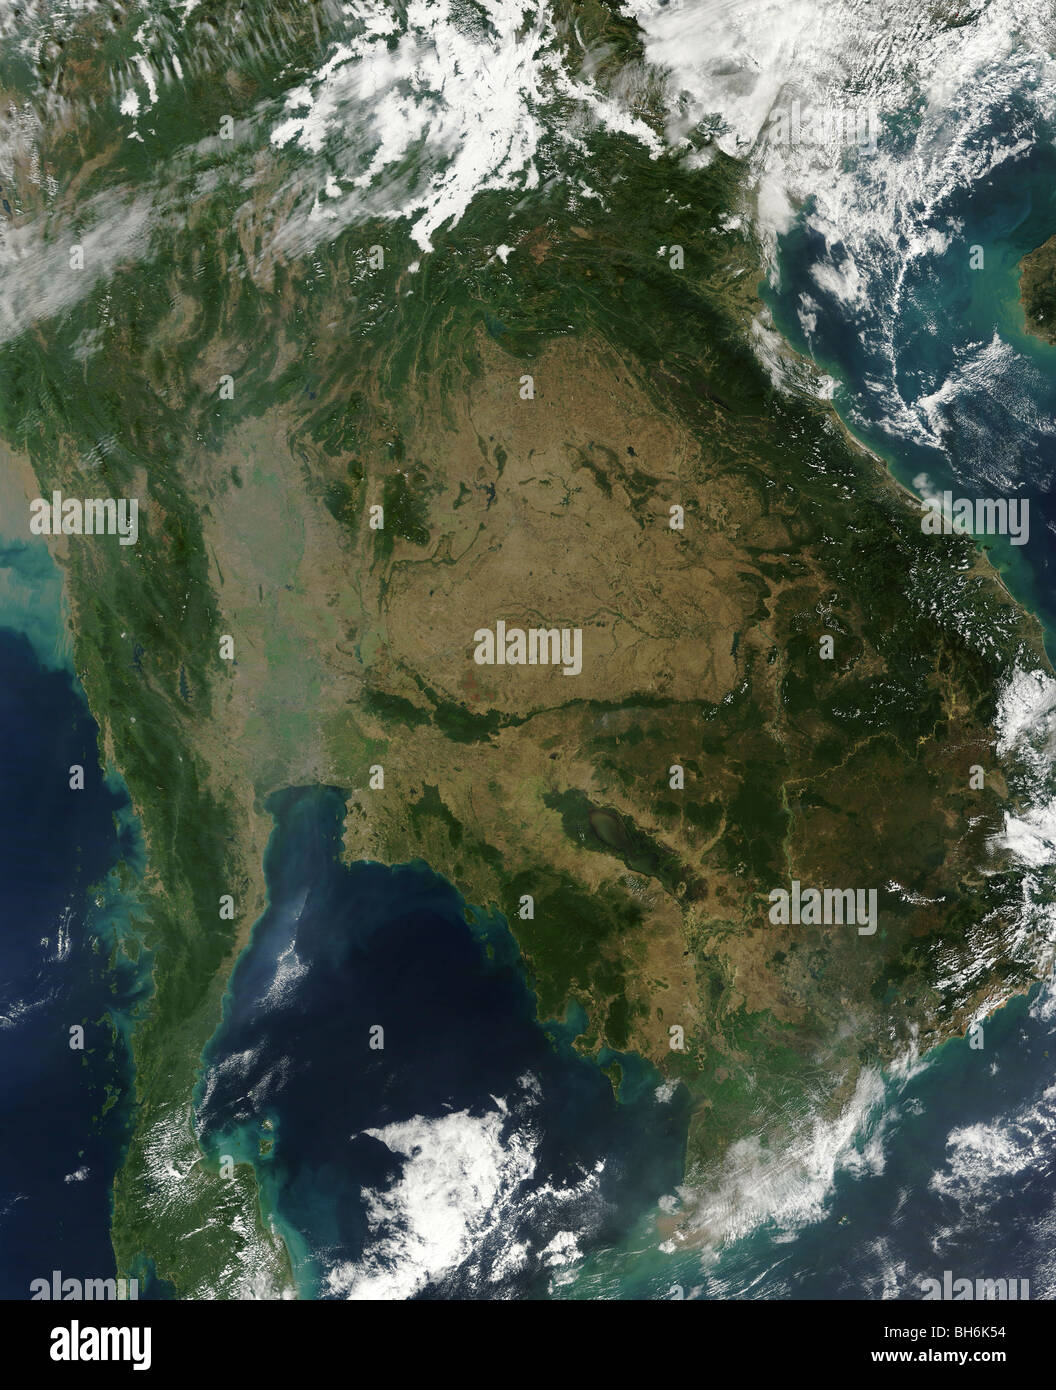 December 24, 2009 - Satellite view of Indochina. - Stock Image